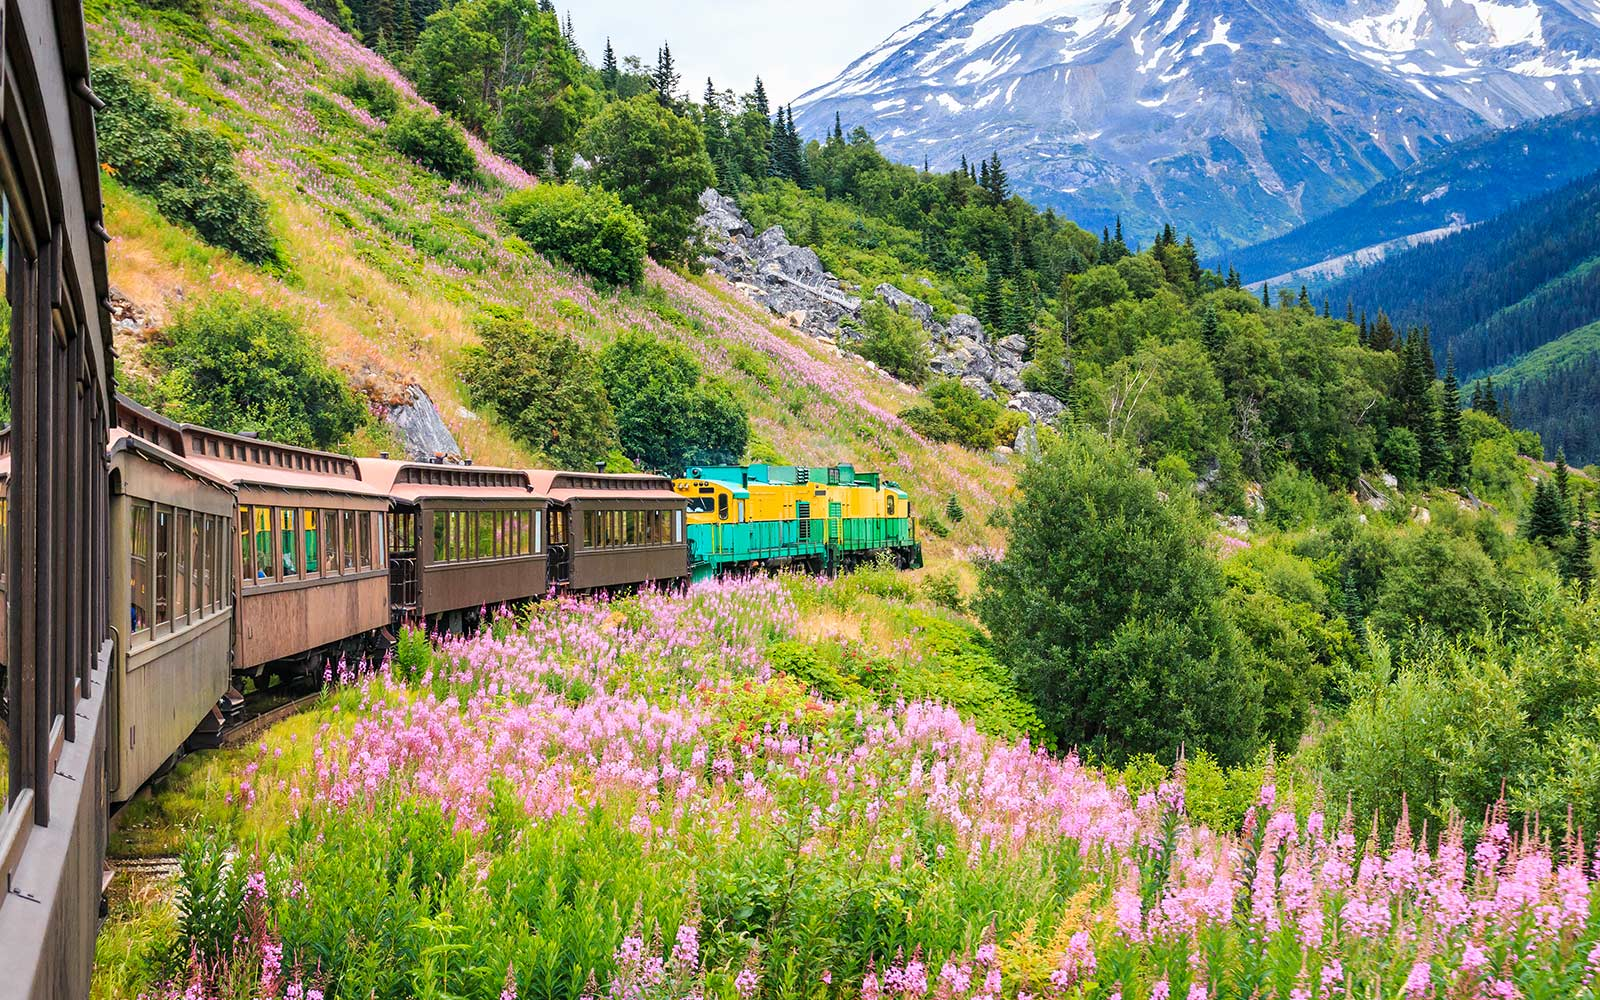 Travel & Leisure: The Best Train Trips to Take Across America